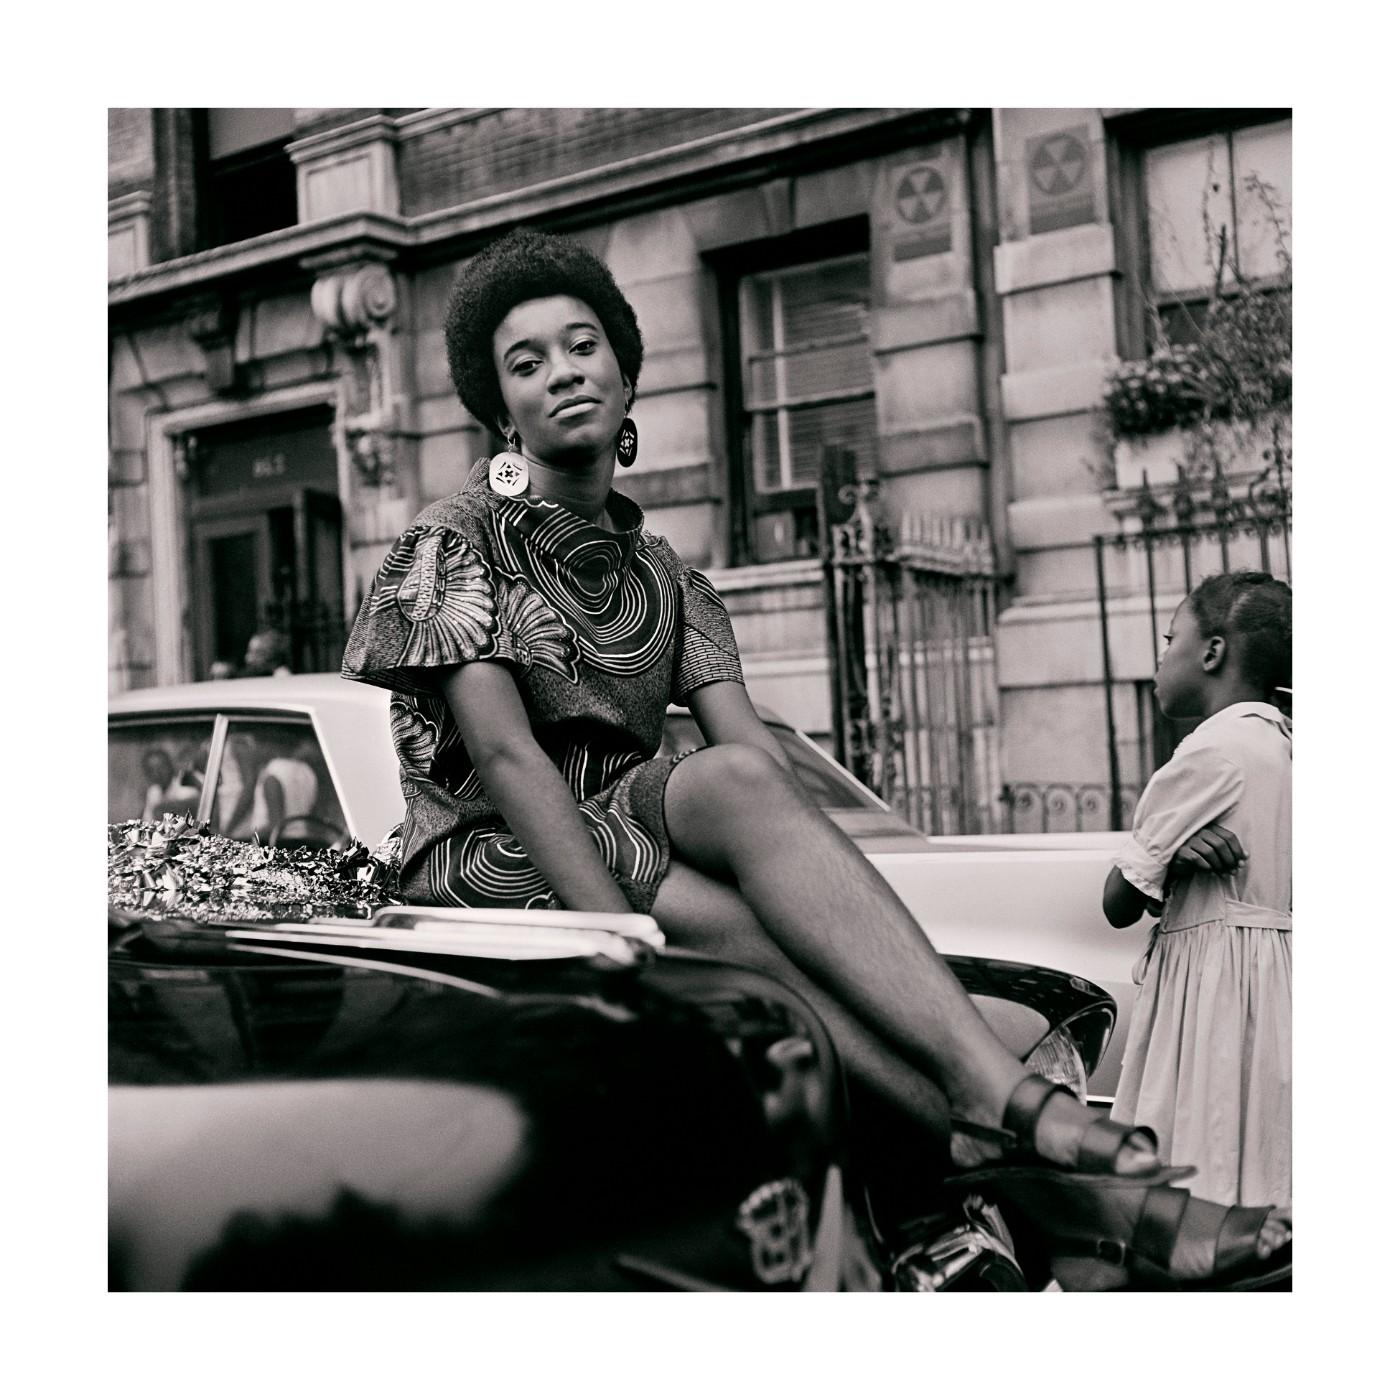 Kwame Brathwaite. Grandassa Model on car during Marcus Garvey Day celebration, Harlem, ca. 1968.